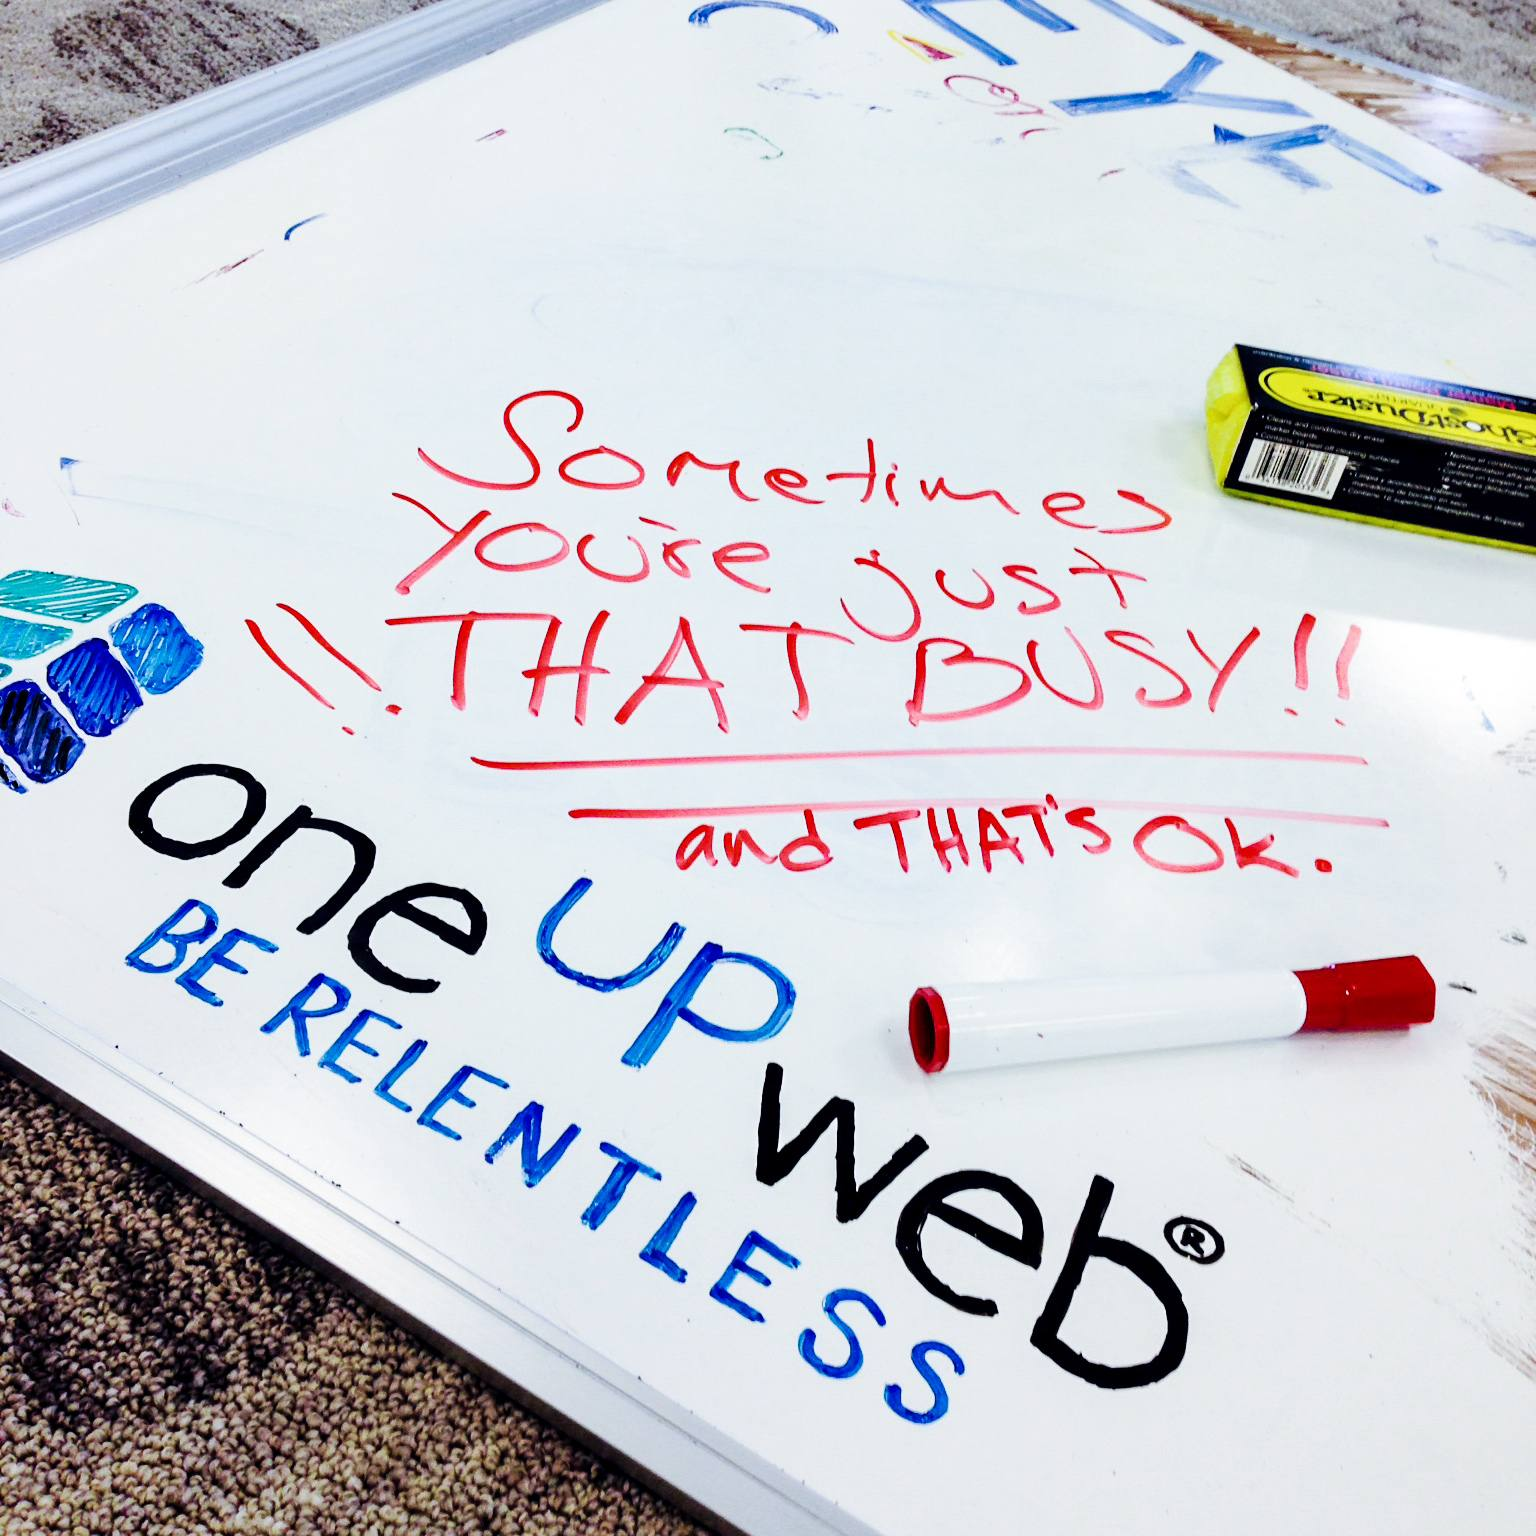 Oneupweb Tip of the Week: Sometimes You're Just That Busy